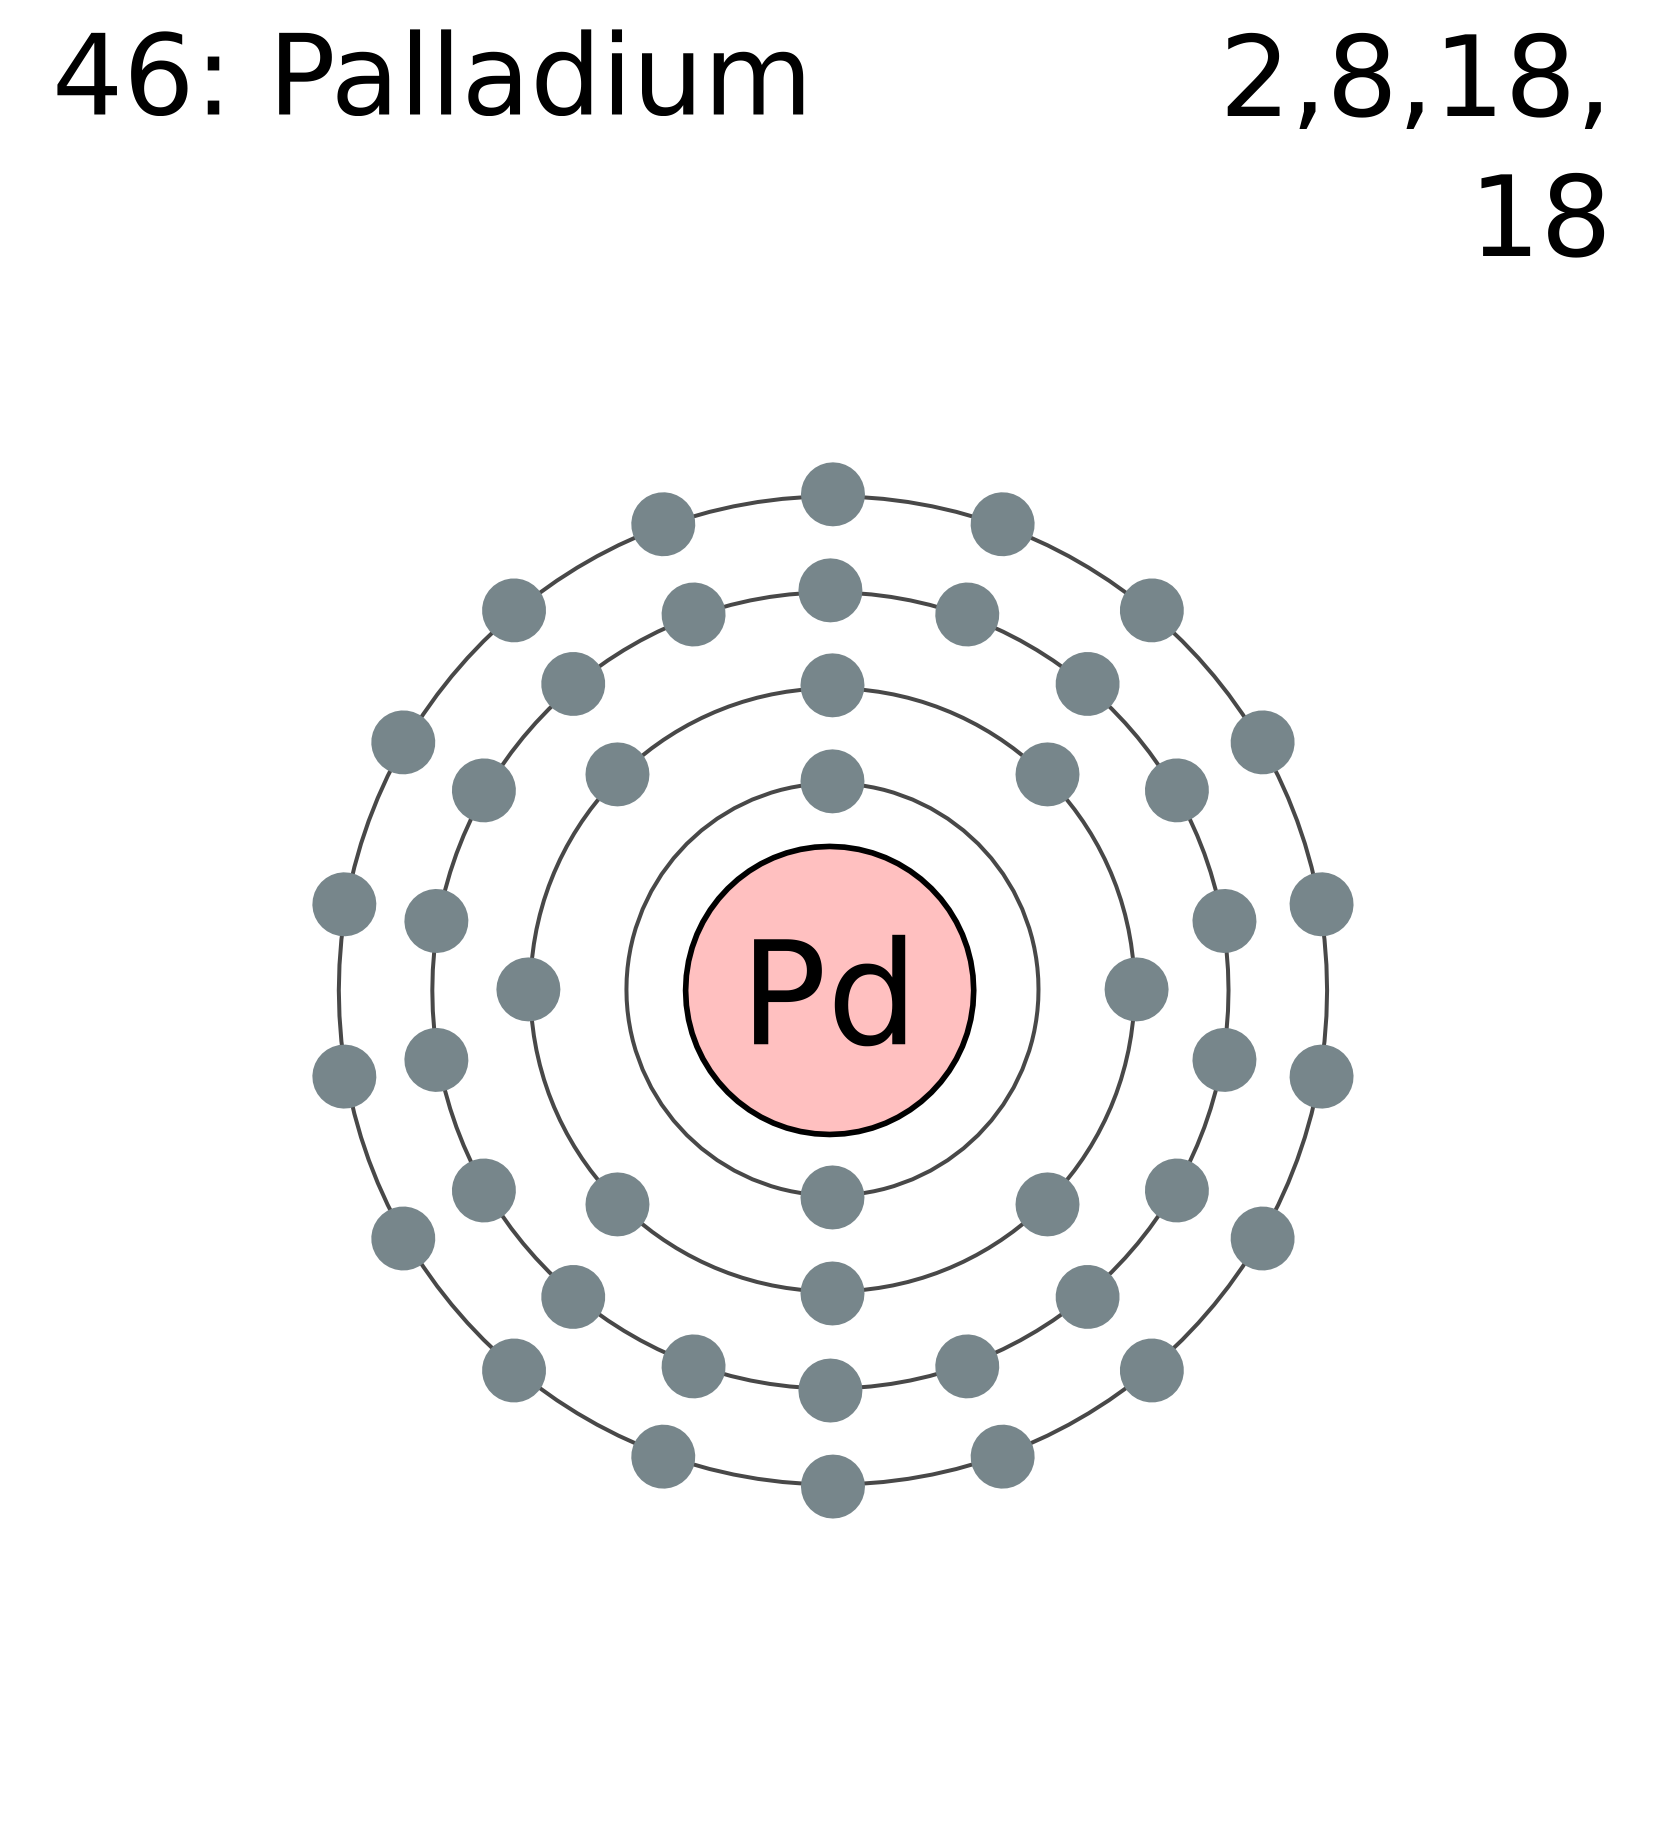 dot diagram of cy dot diagram of yttrium file:electron shell 046 palladium.png